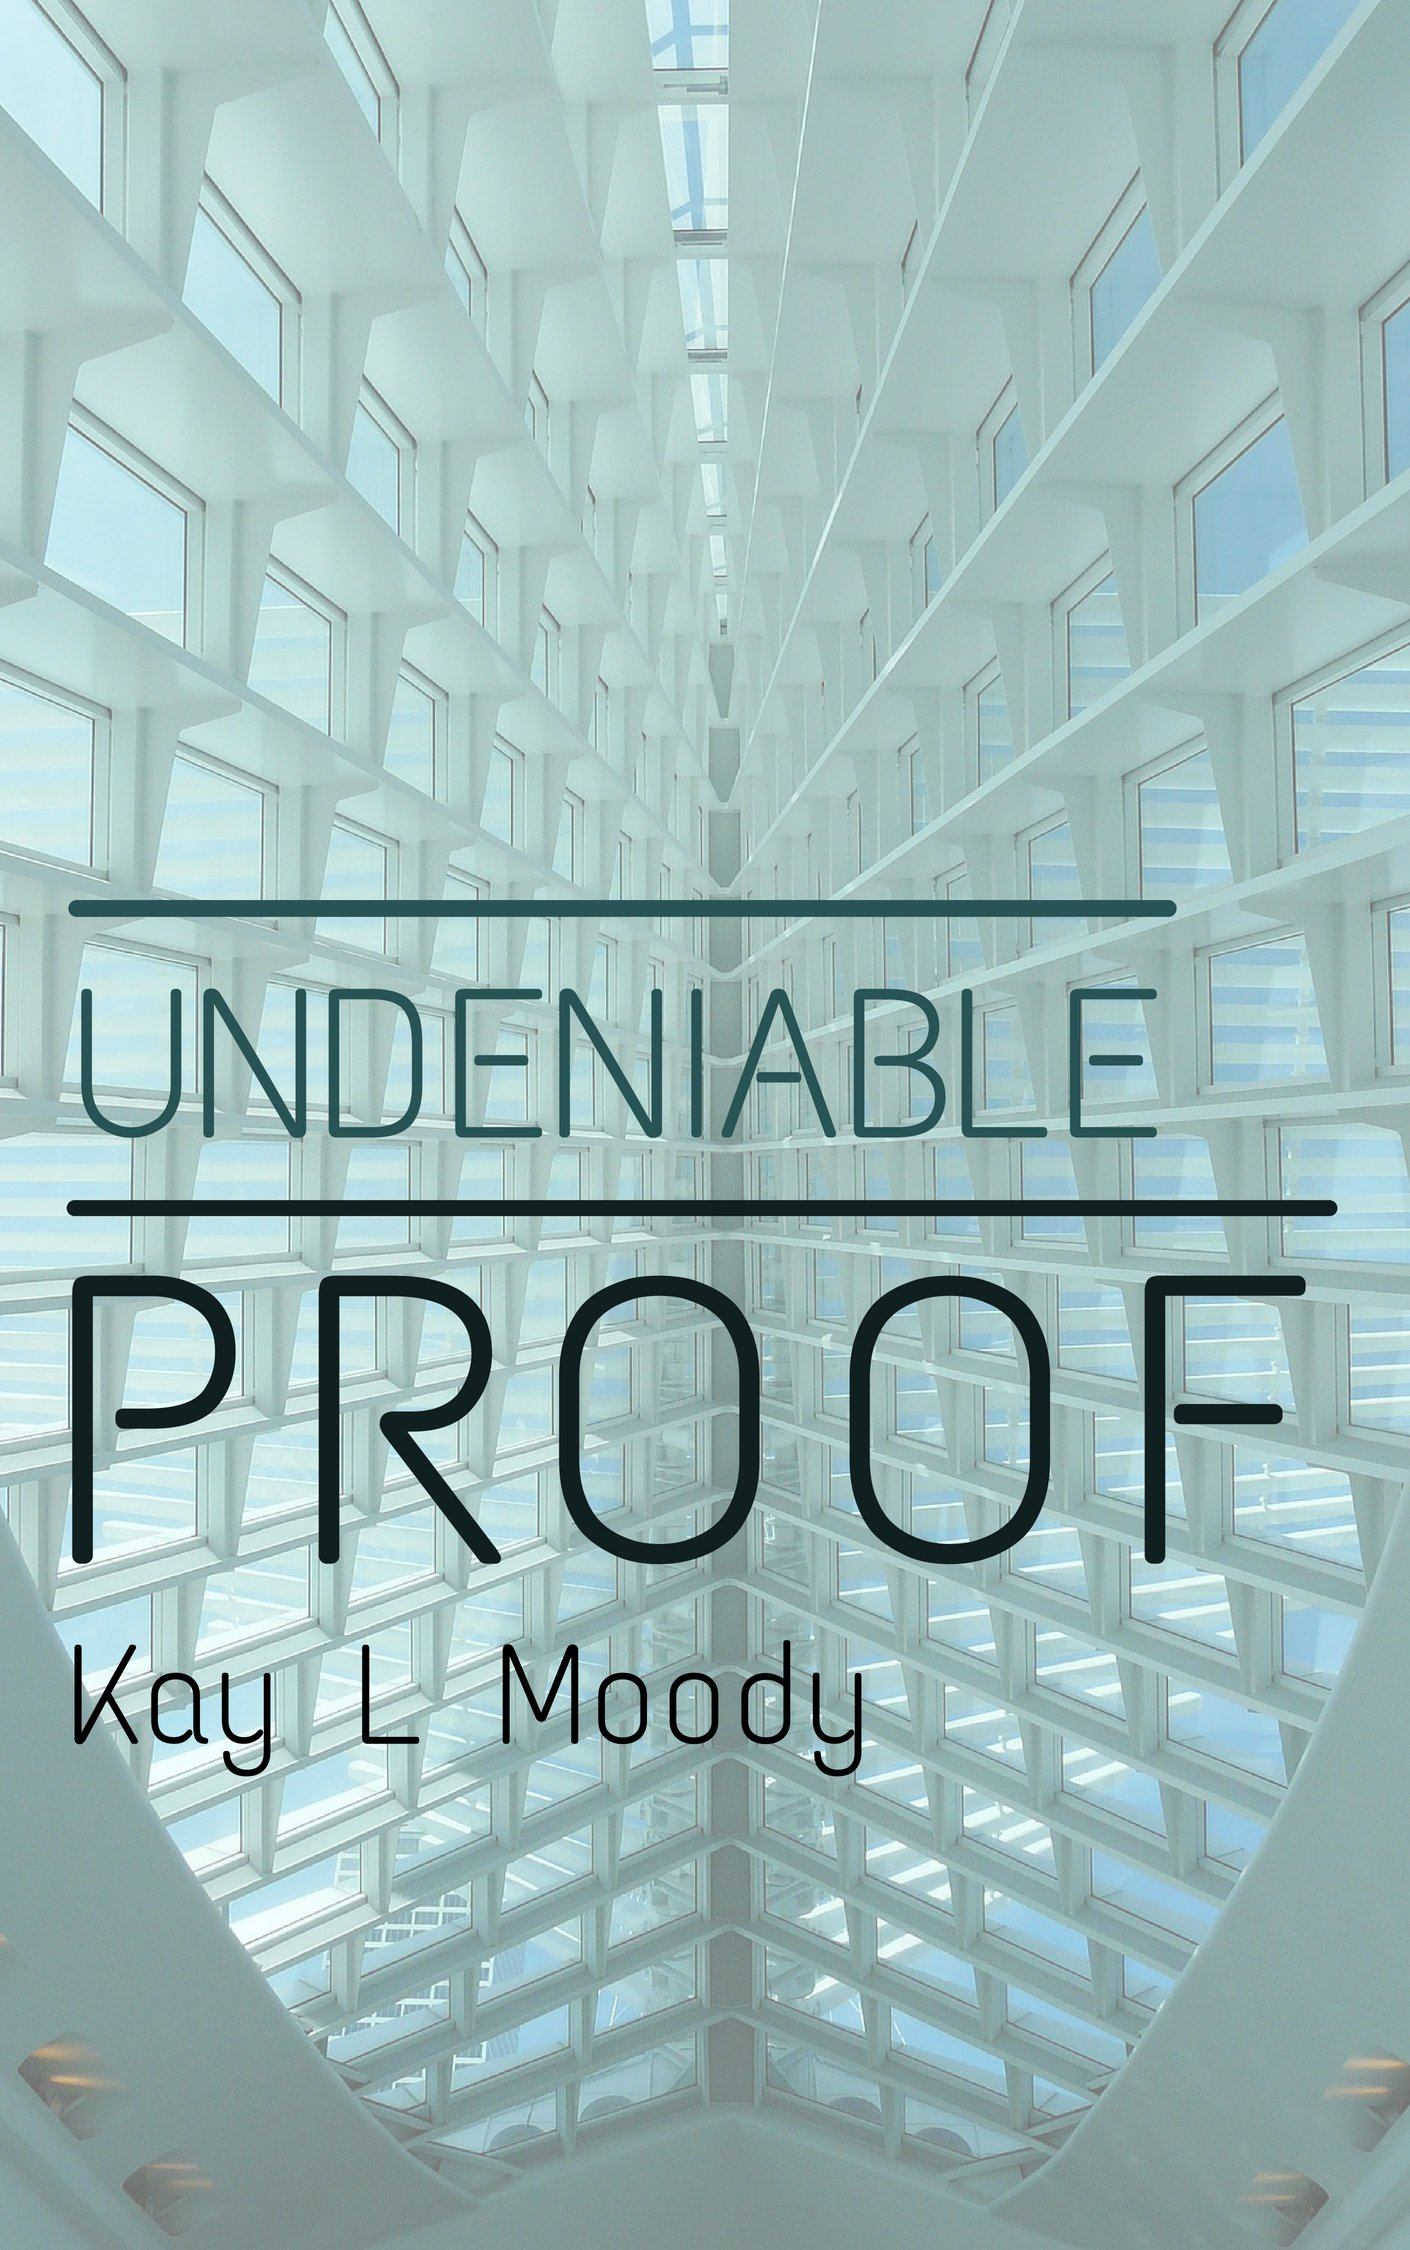 Read free sci fi short stories online by Kay L Moody. Enjoy this soft sci fi short story, Undeniable Proof. Check back the last Monday of each month for a new story!